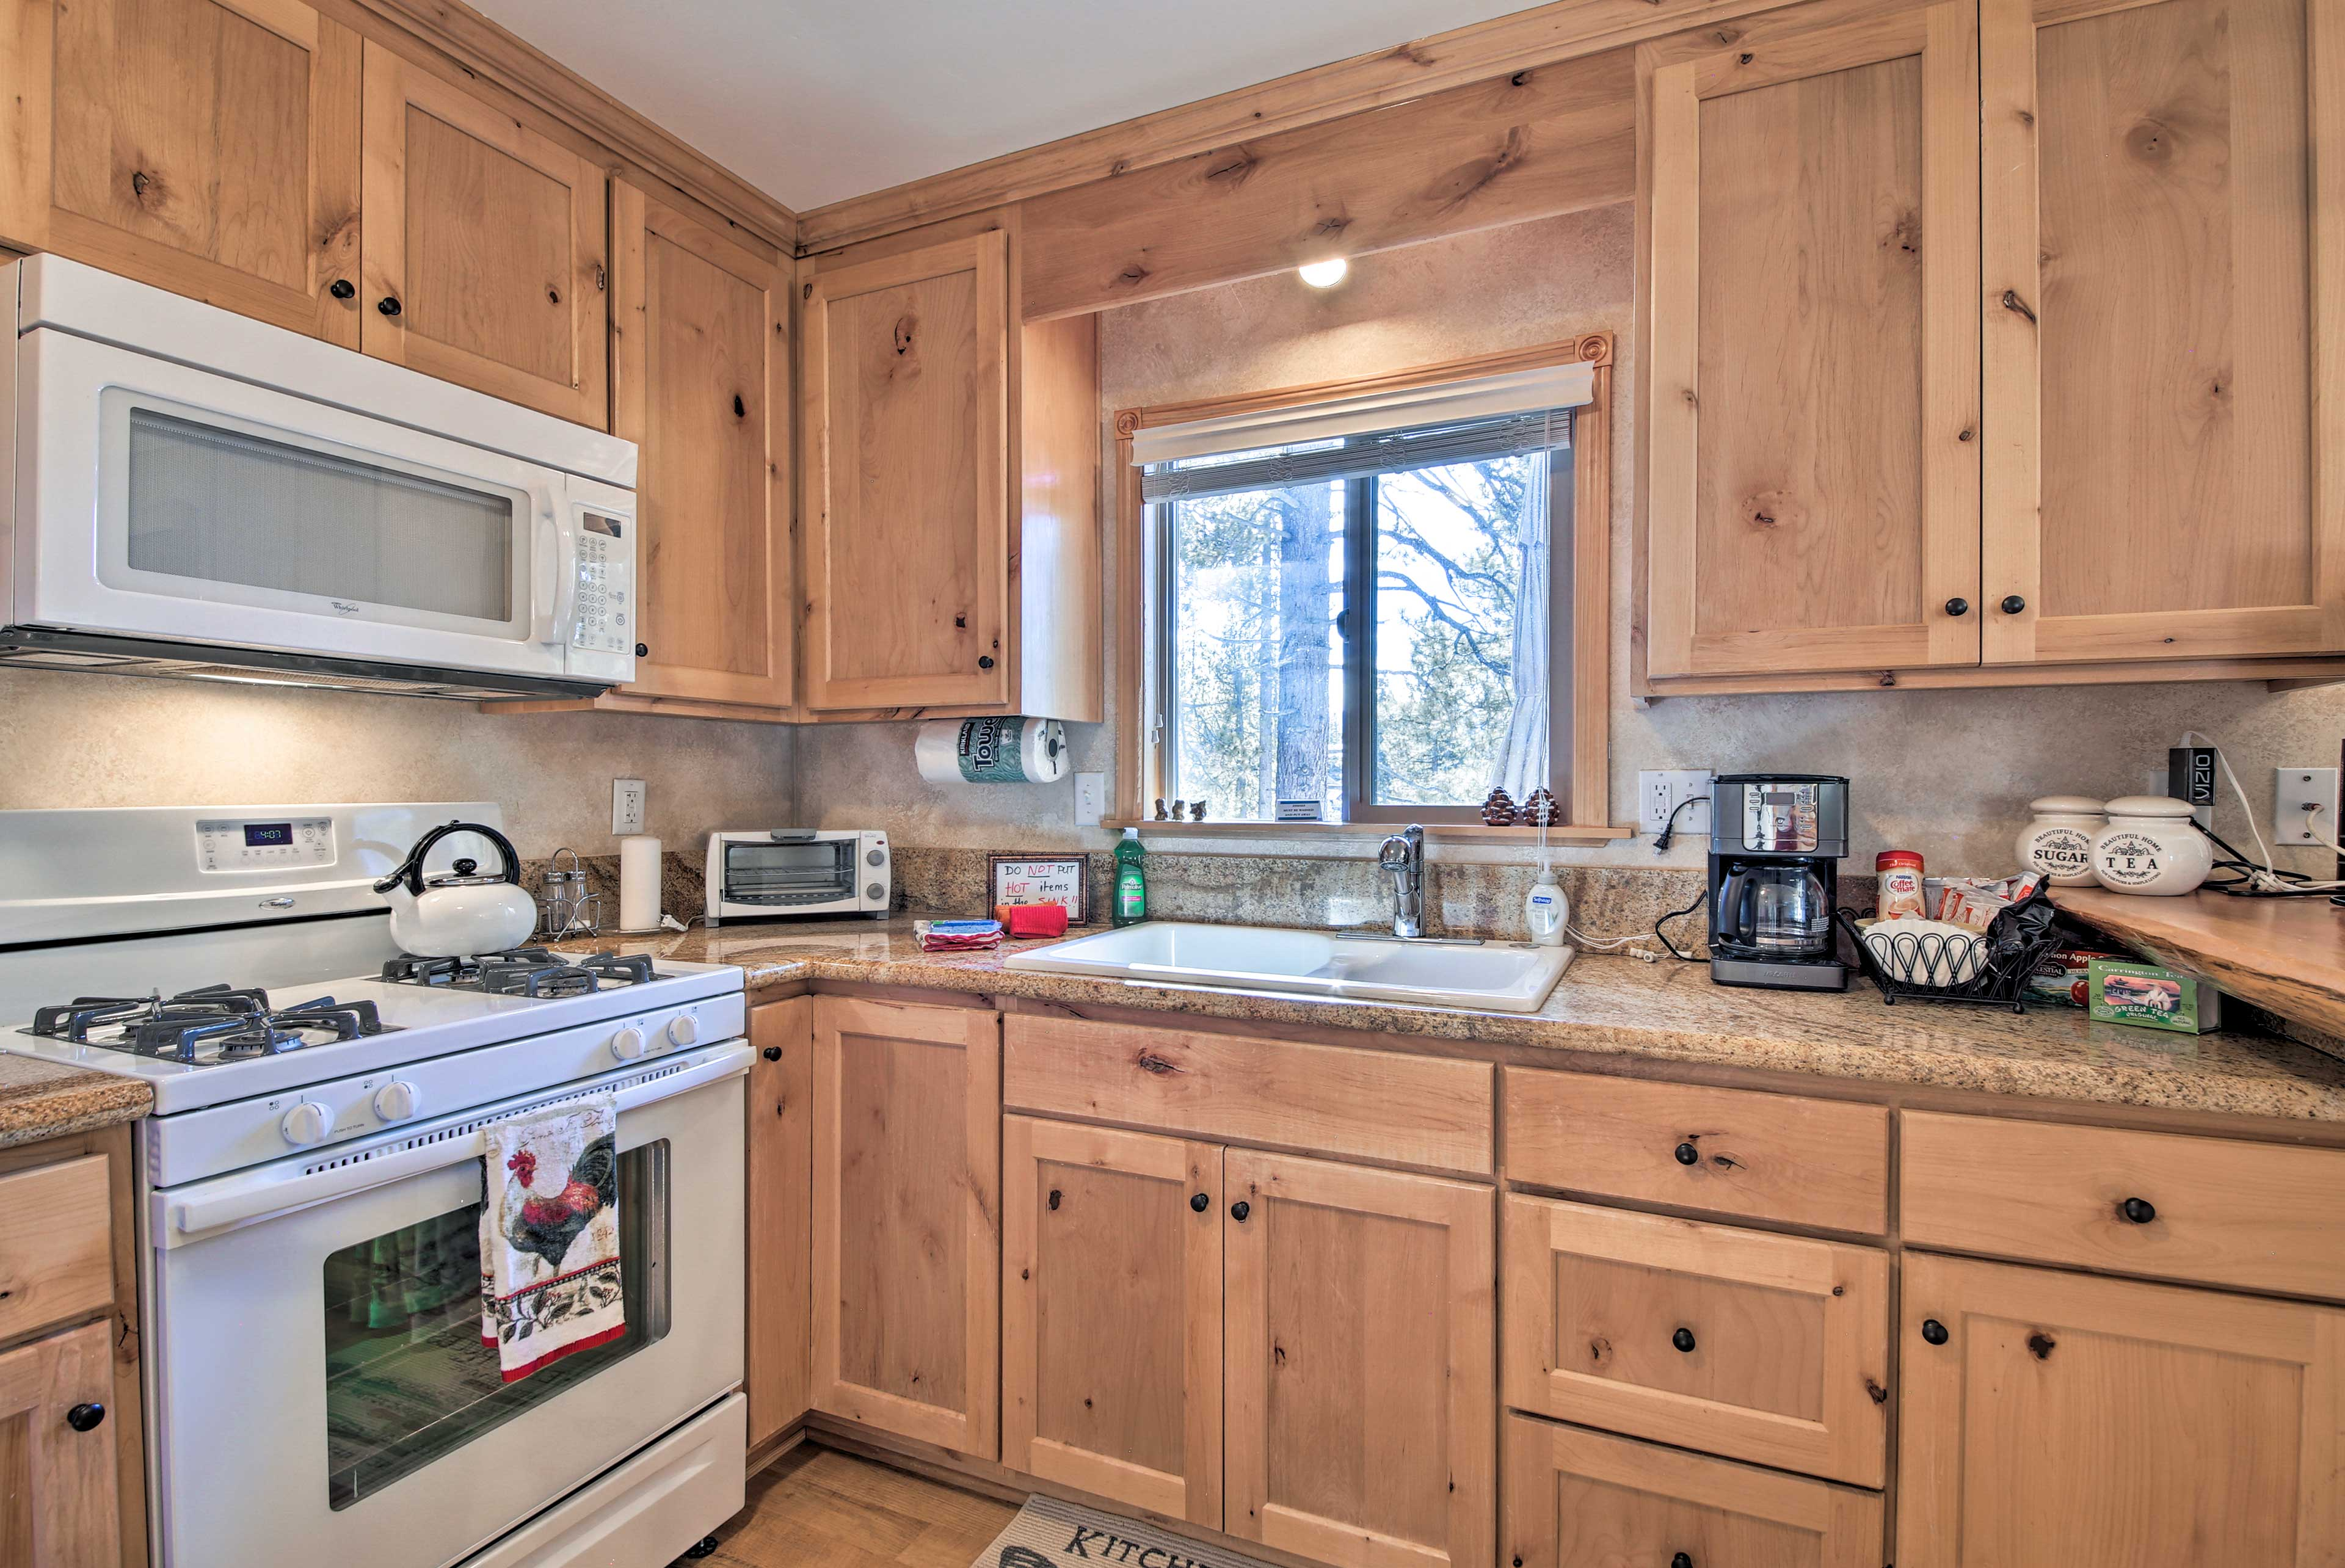 You'll find everything from a coffee maker & stove/oven to ample cookware here!